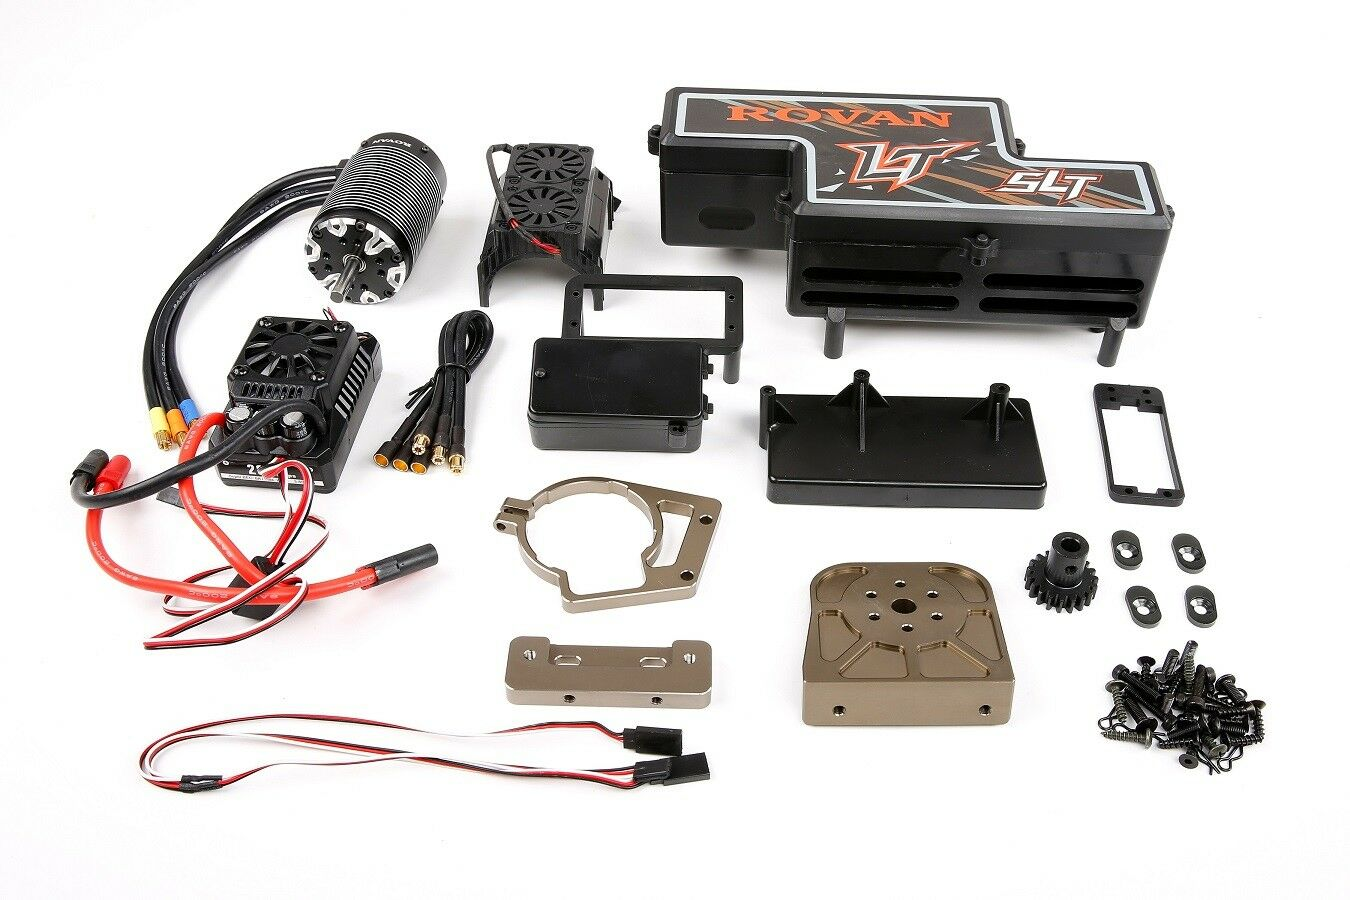 Nuovo Electric LT/SLT oil changed Conversion kit for 1/5 losi 5ive-T parts